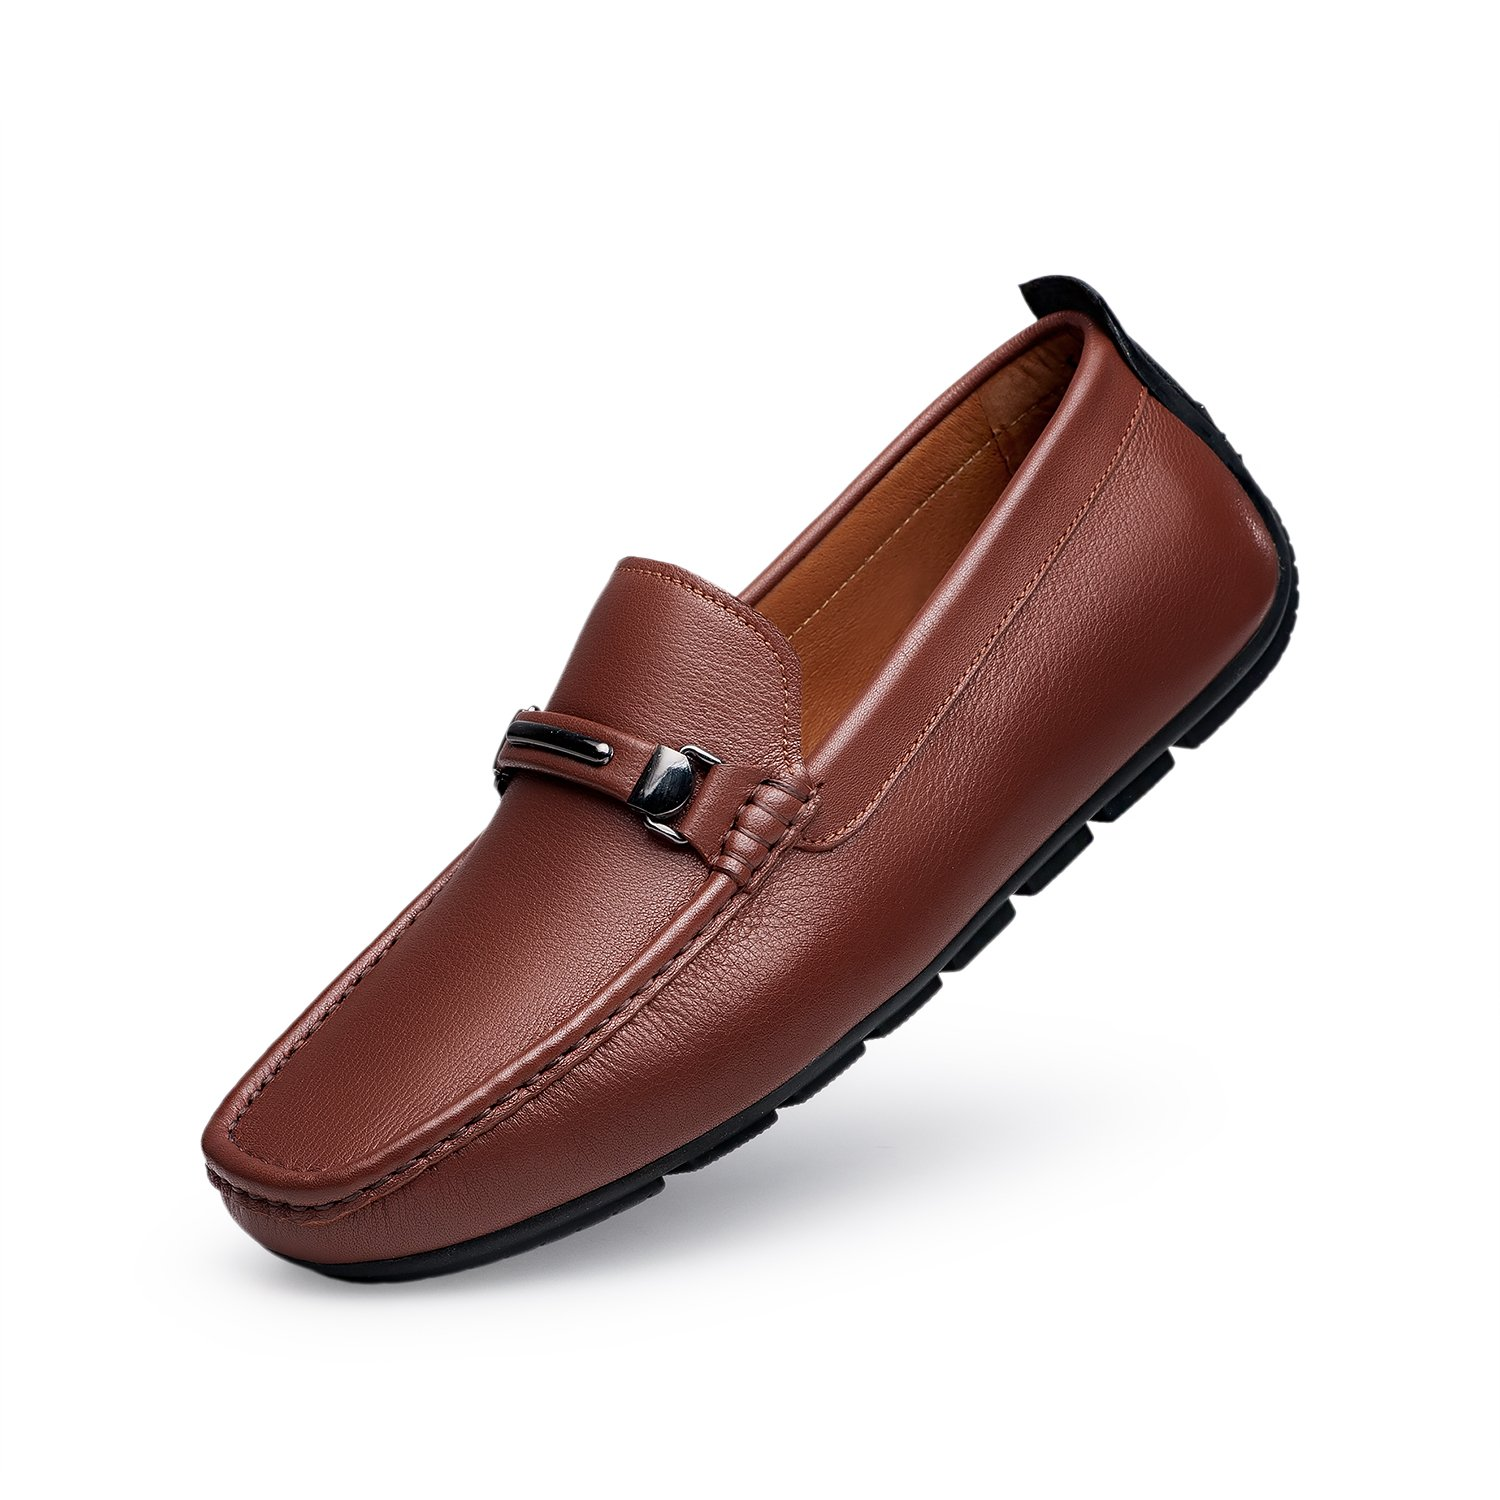 ZRO Men's Casual Fashion Driving Loafers Flats Boat shoes Brown US 6